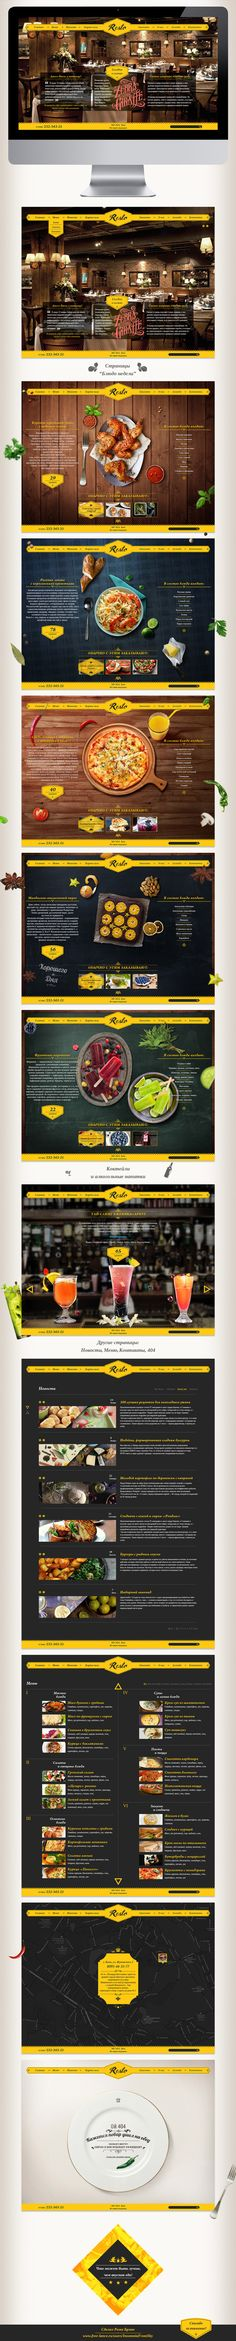 Prosto Resto by Roma Brann, via Behance